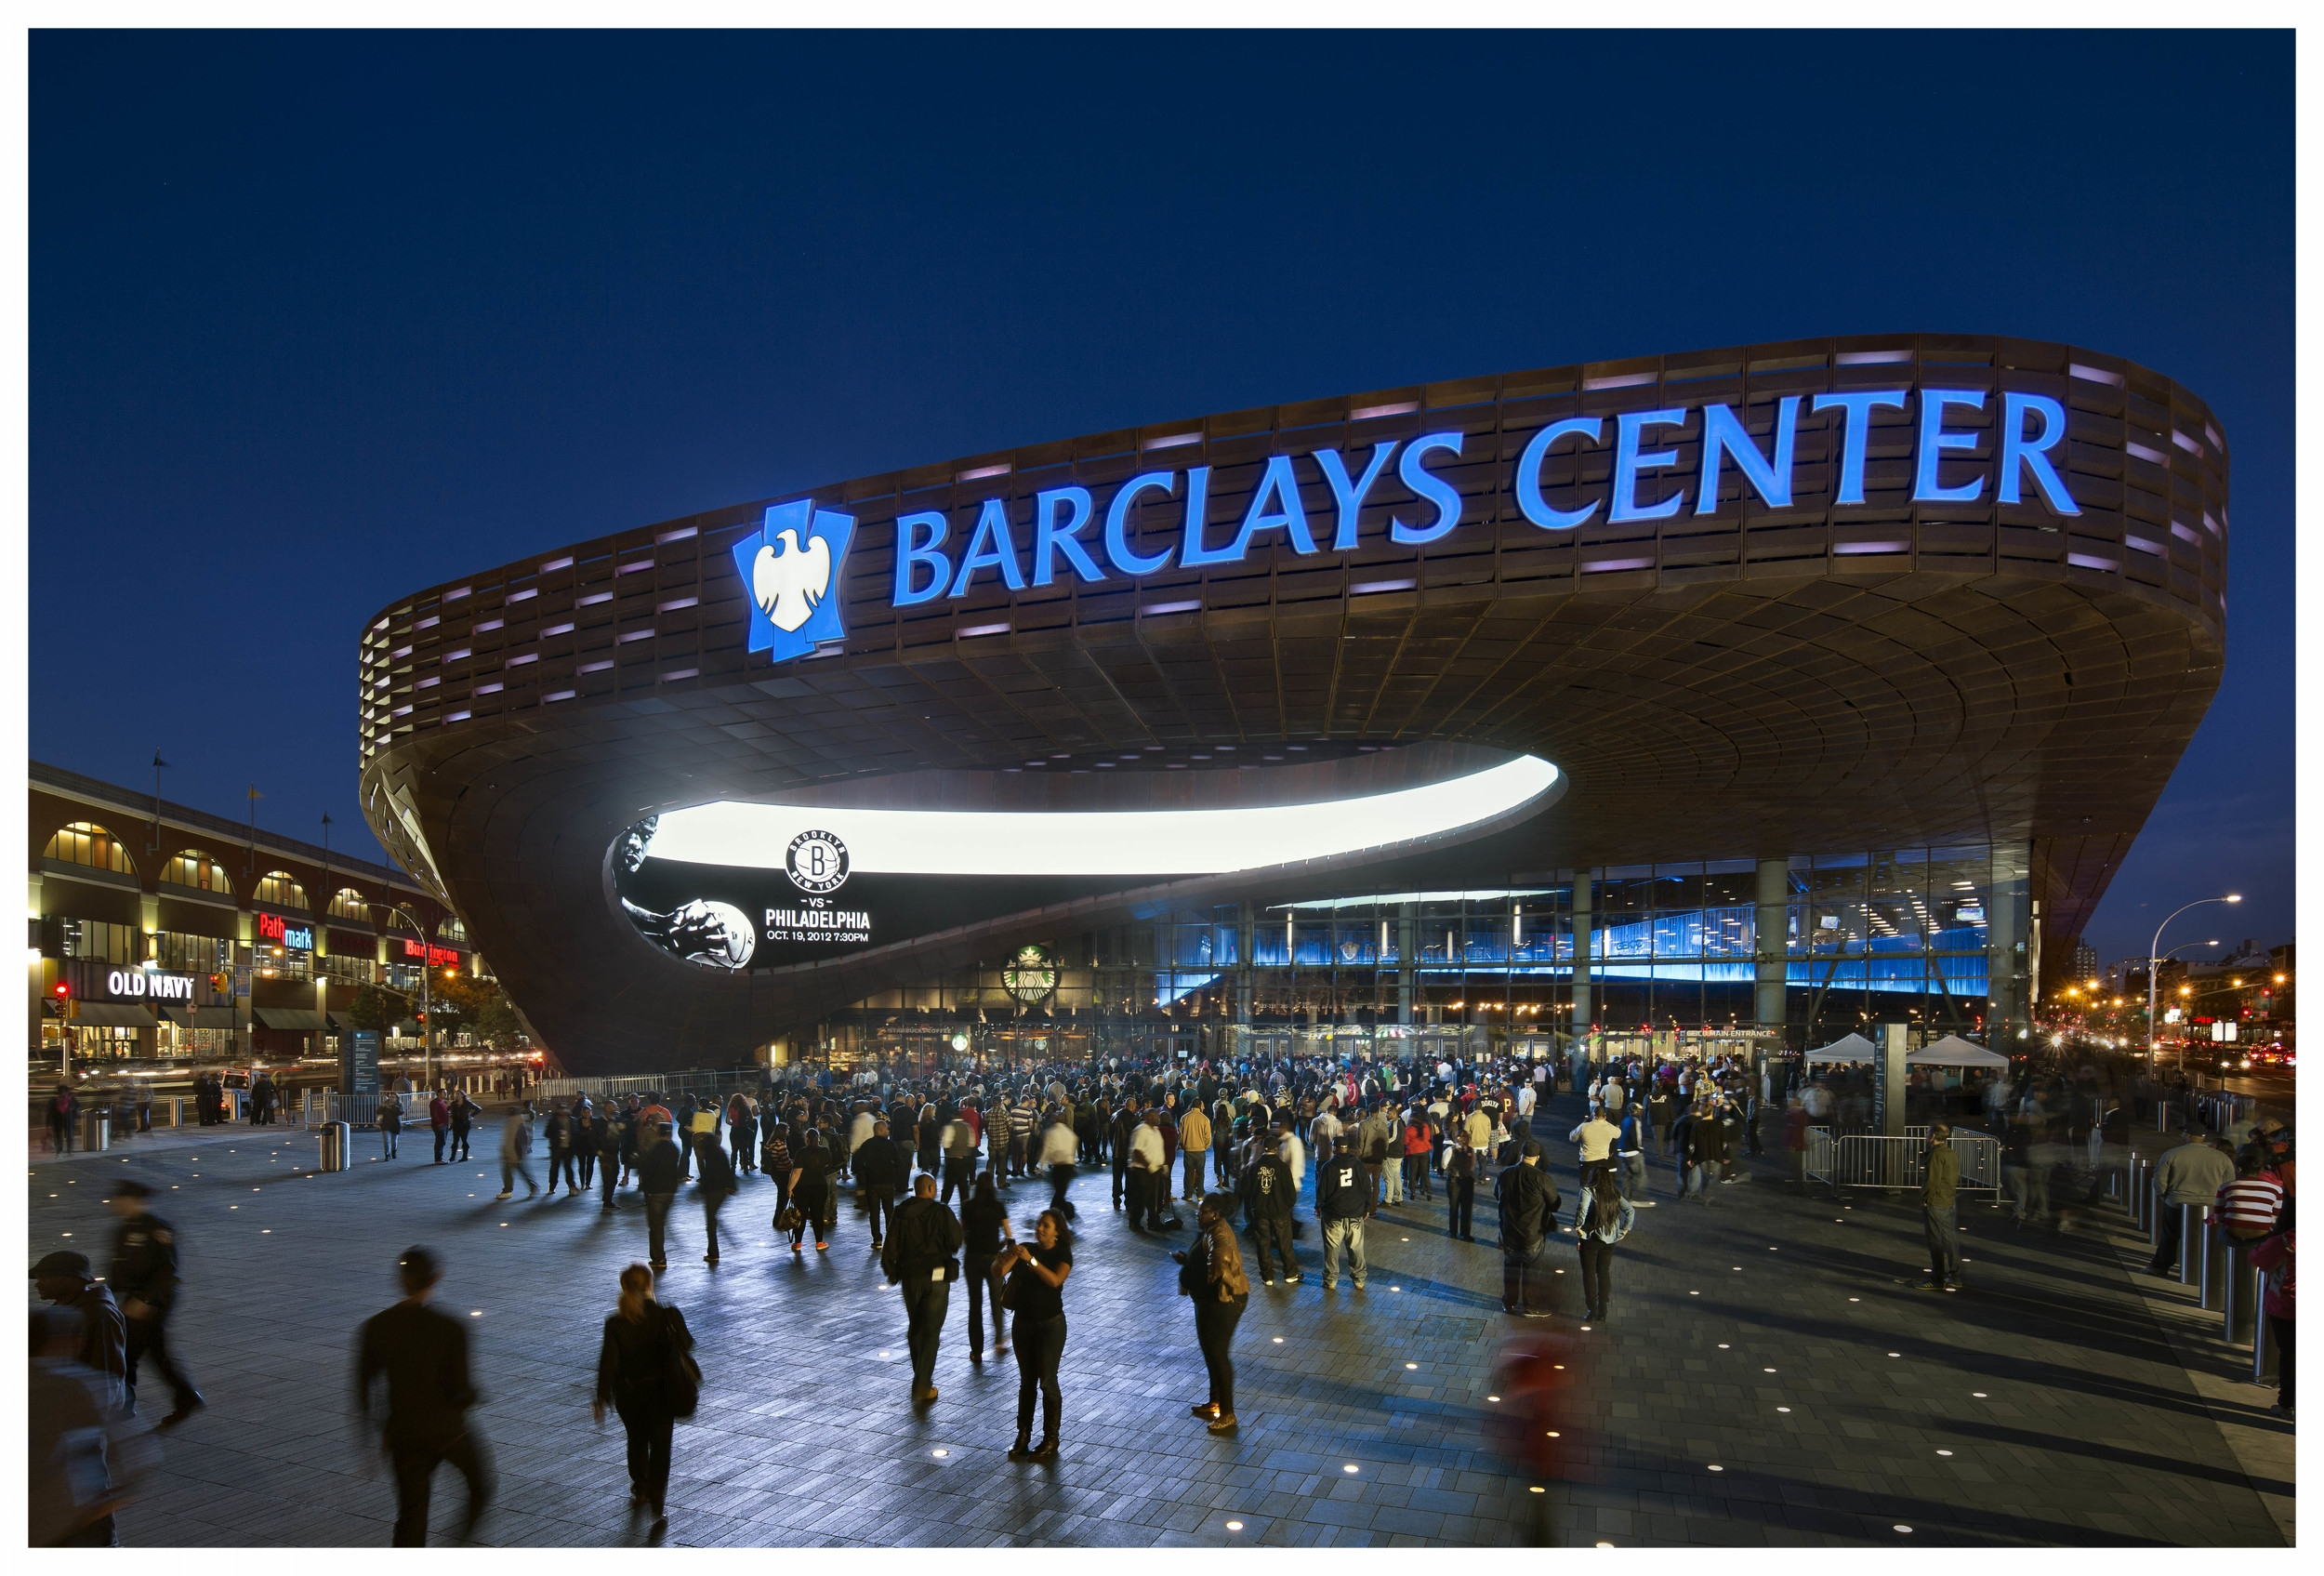 SHoP_Barclays Center_pho_Bruce Damonte_08.jpg